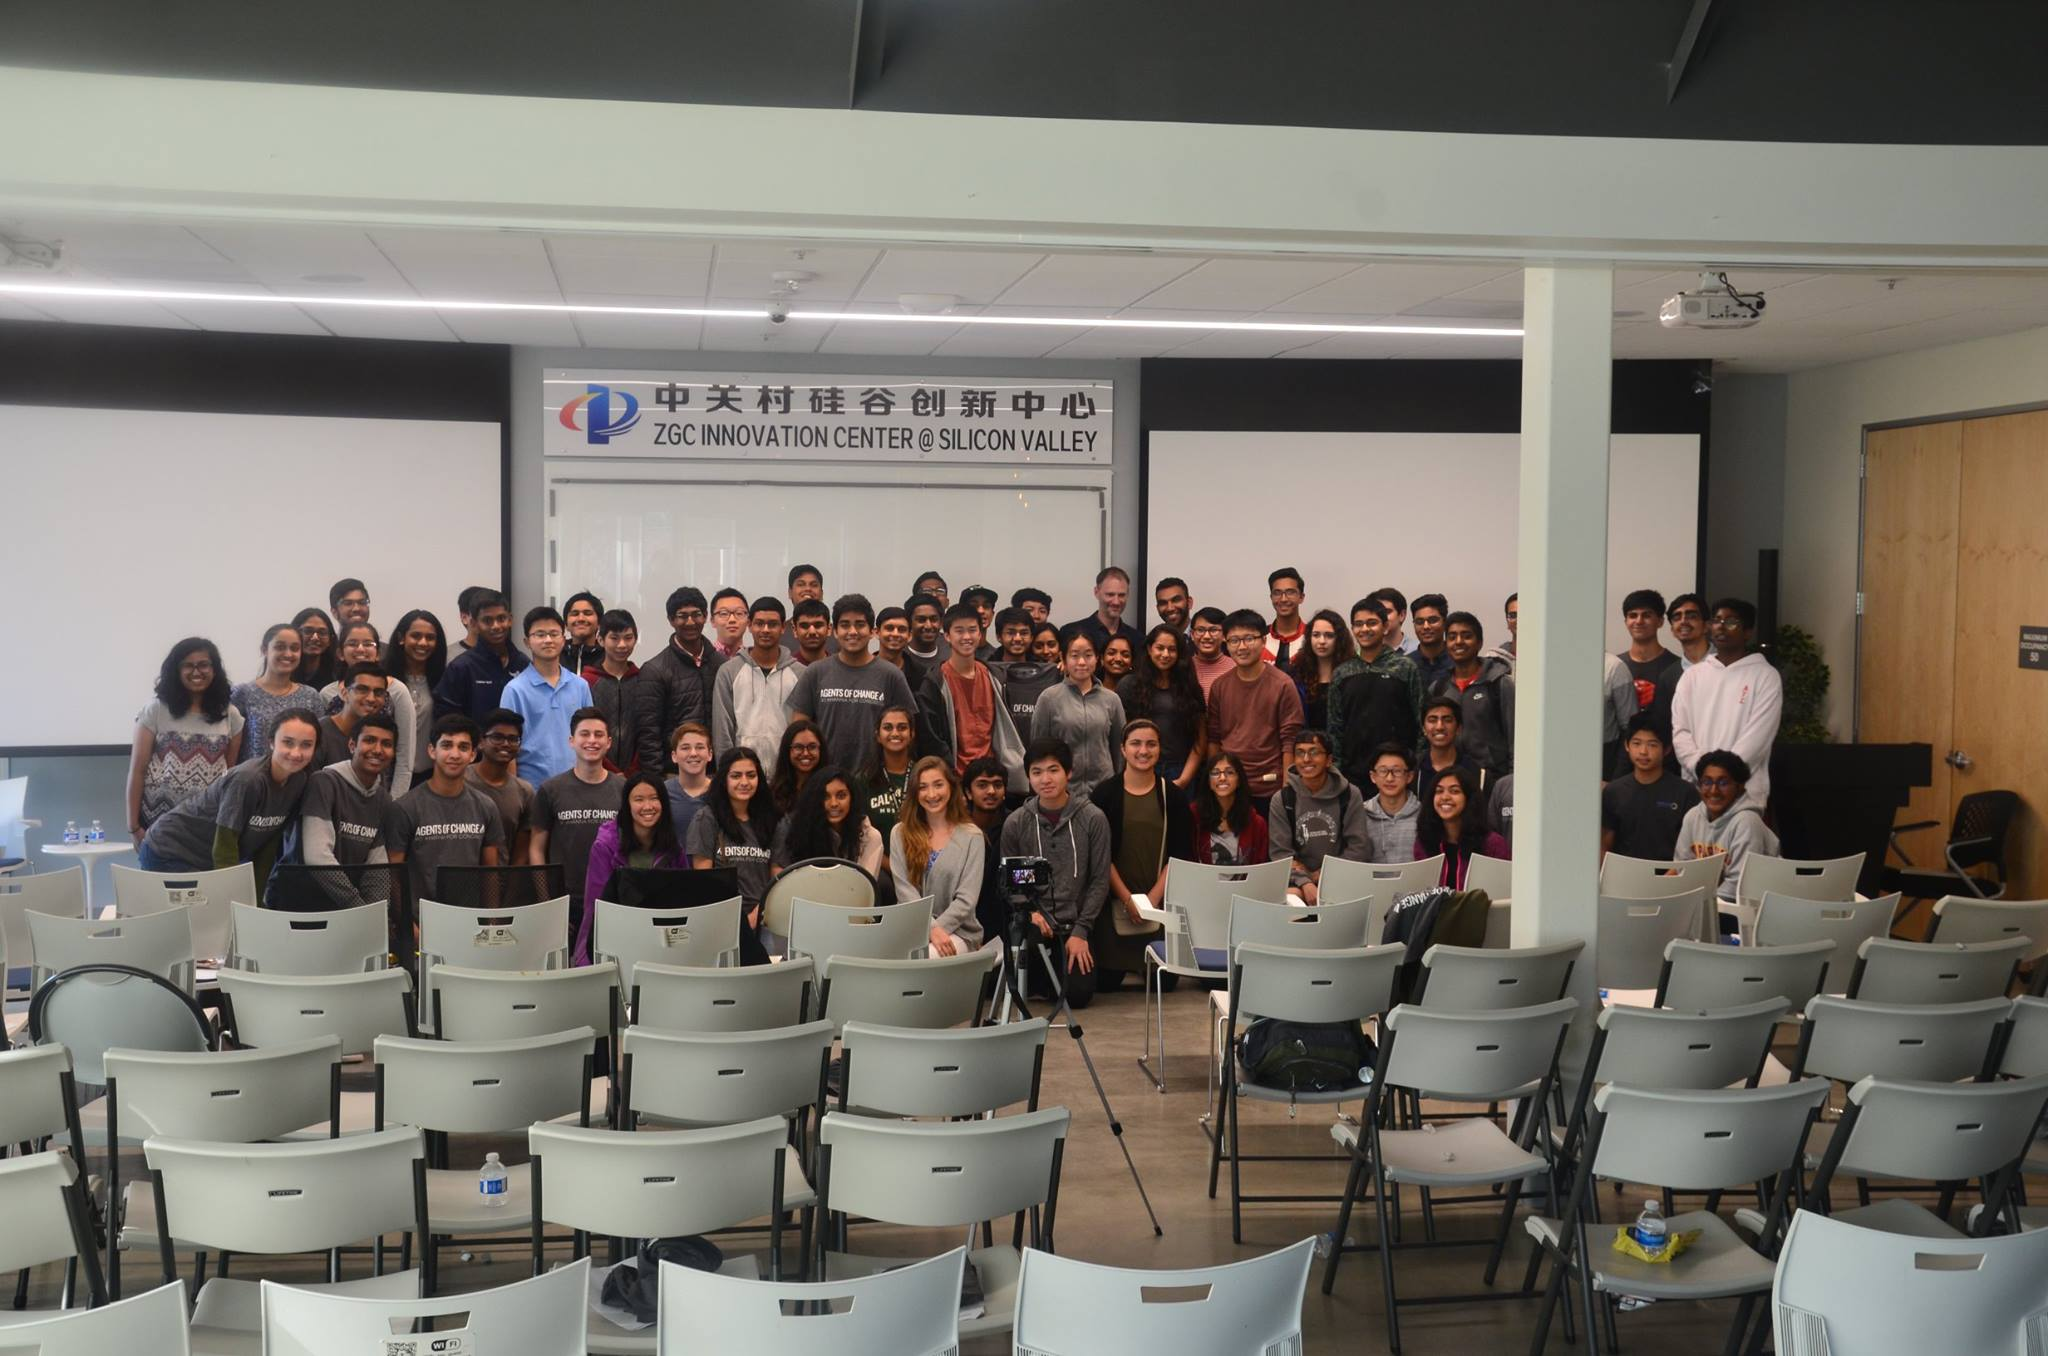 Students pose together at the event.